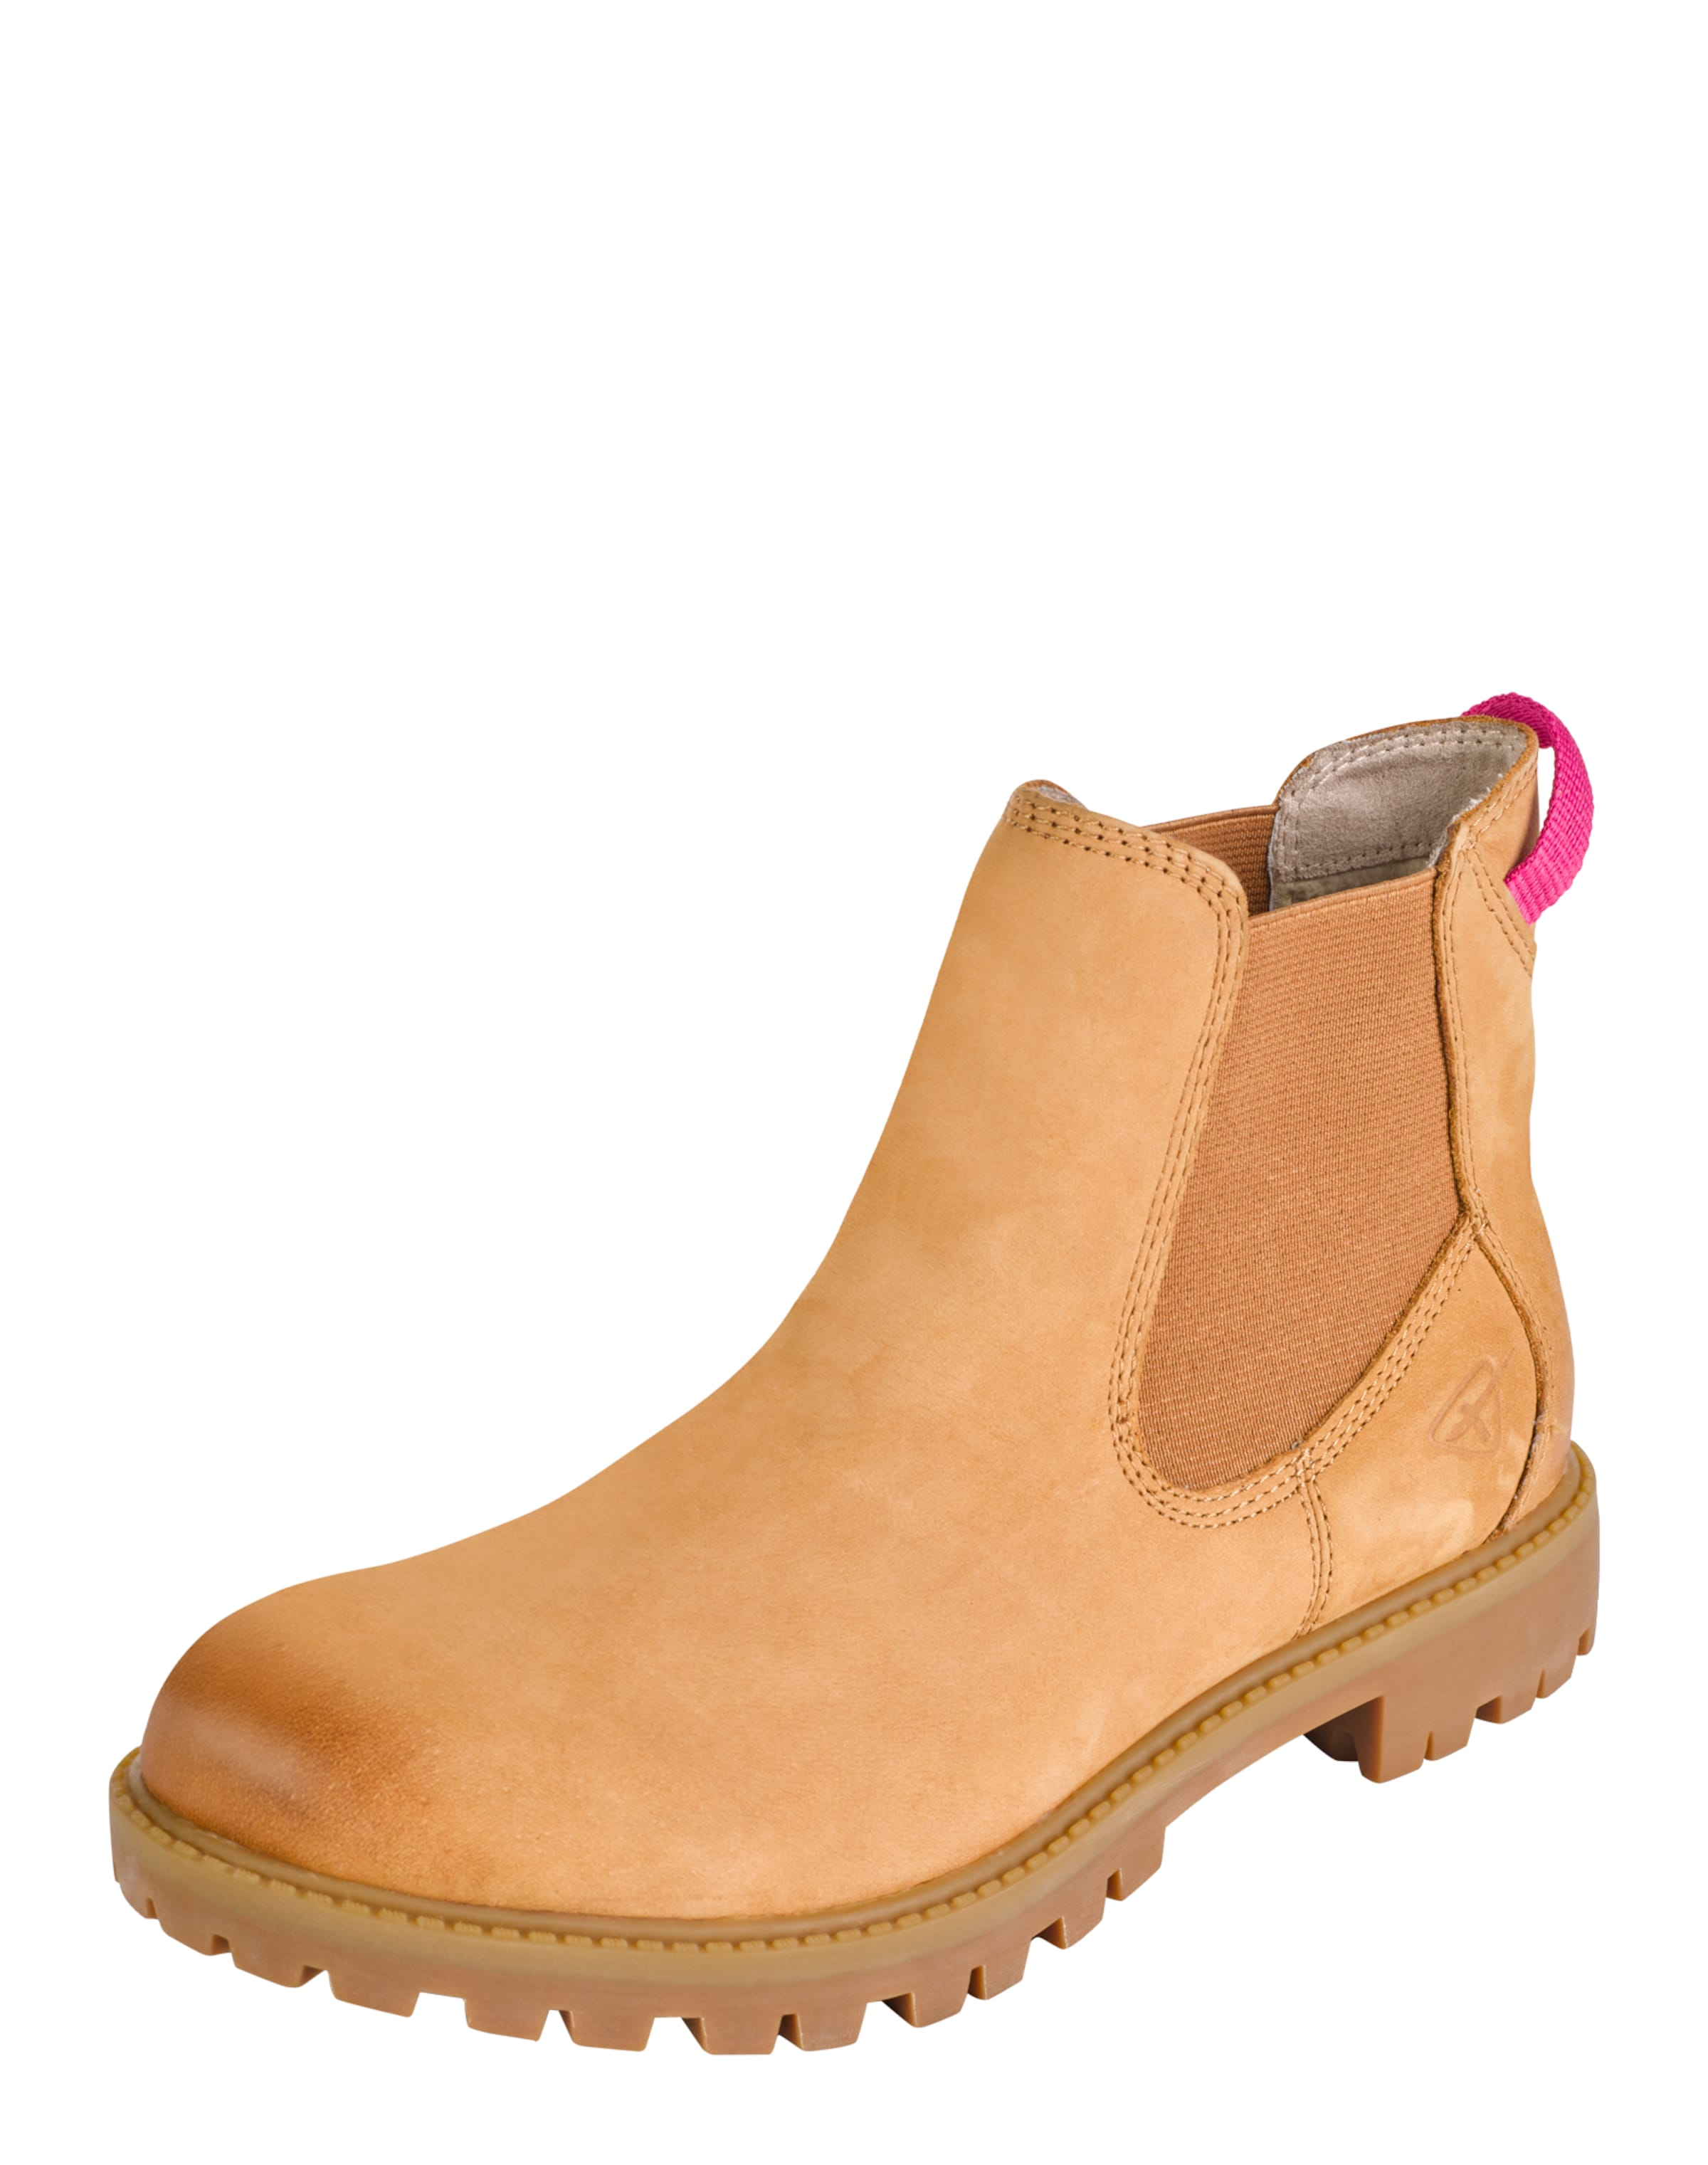 Anthrazit In Chelsea Tamaris In In Boots Boots Chelsea Anthrazit Chelsea Tamaris Tamaris Boots 29HWEID